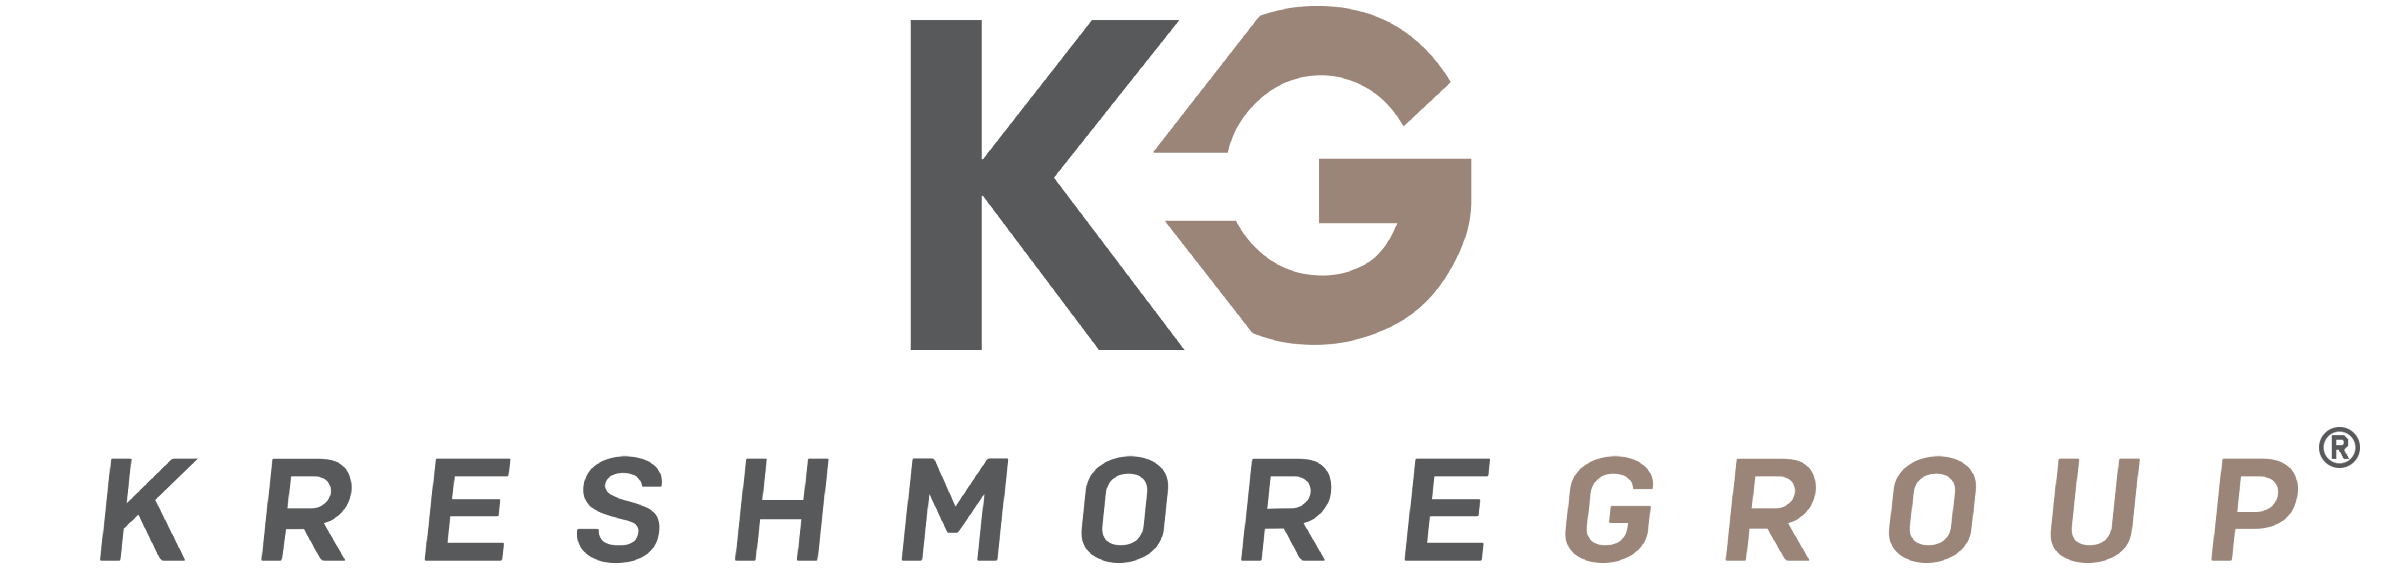 Kreshmore Group | Restructuring, Mergers, & Acquisitions Uncategorized 293